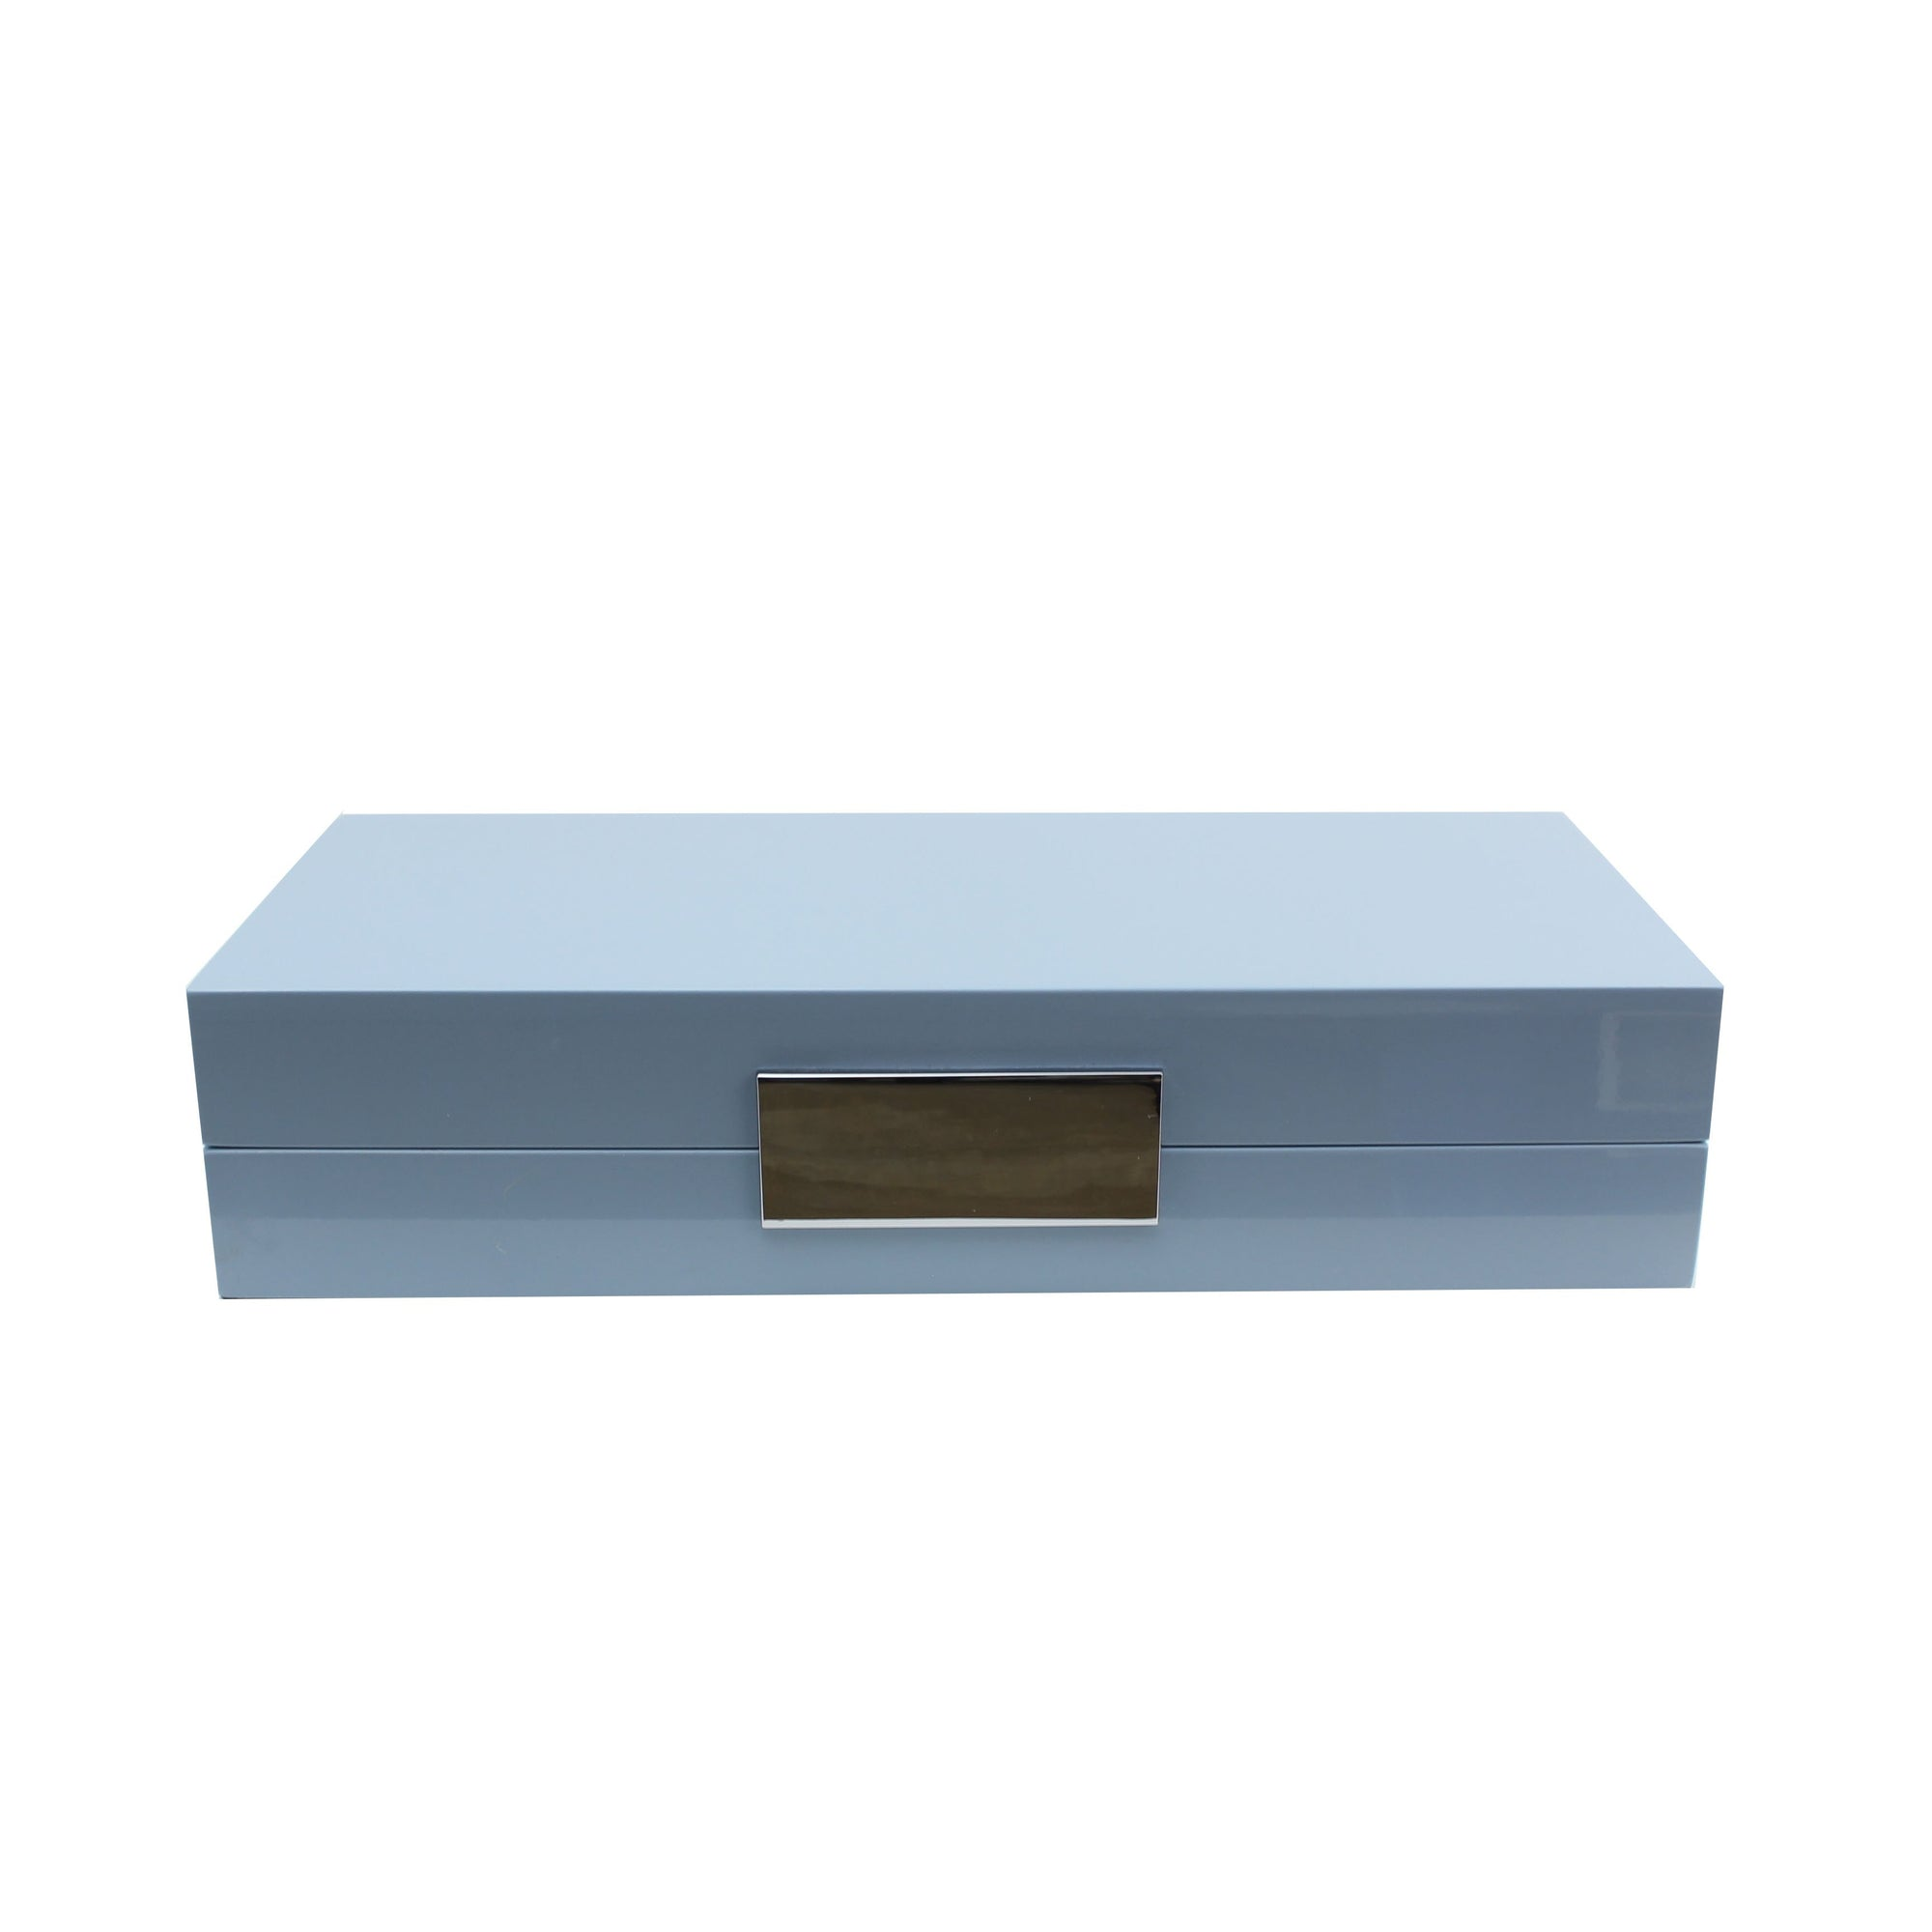 Addison Ross - Pale Denim Lacquer Box With Silver